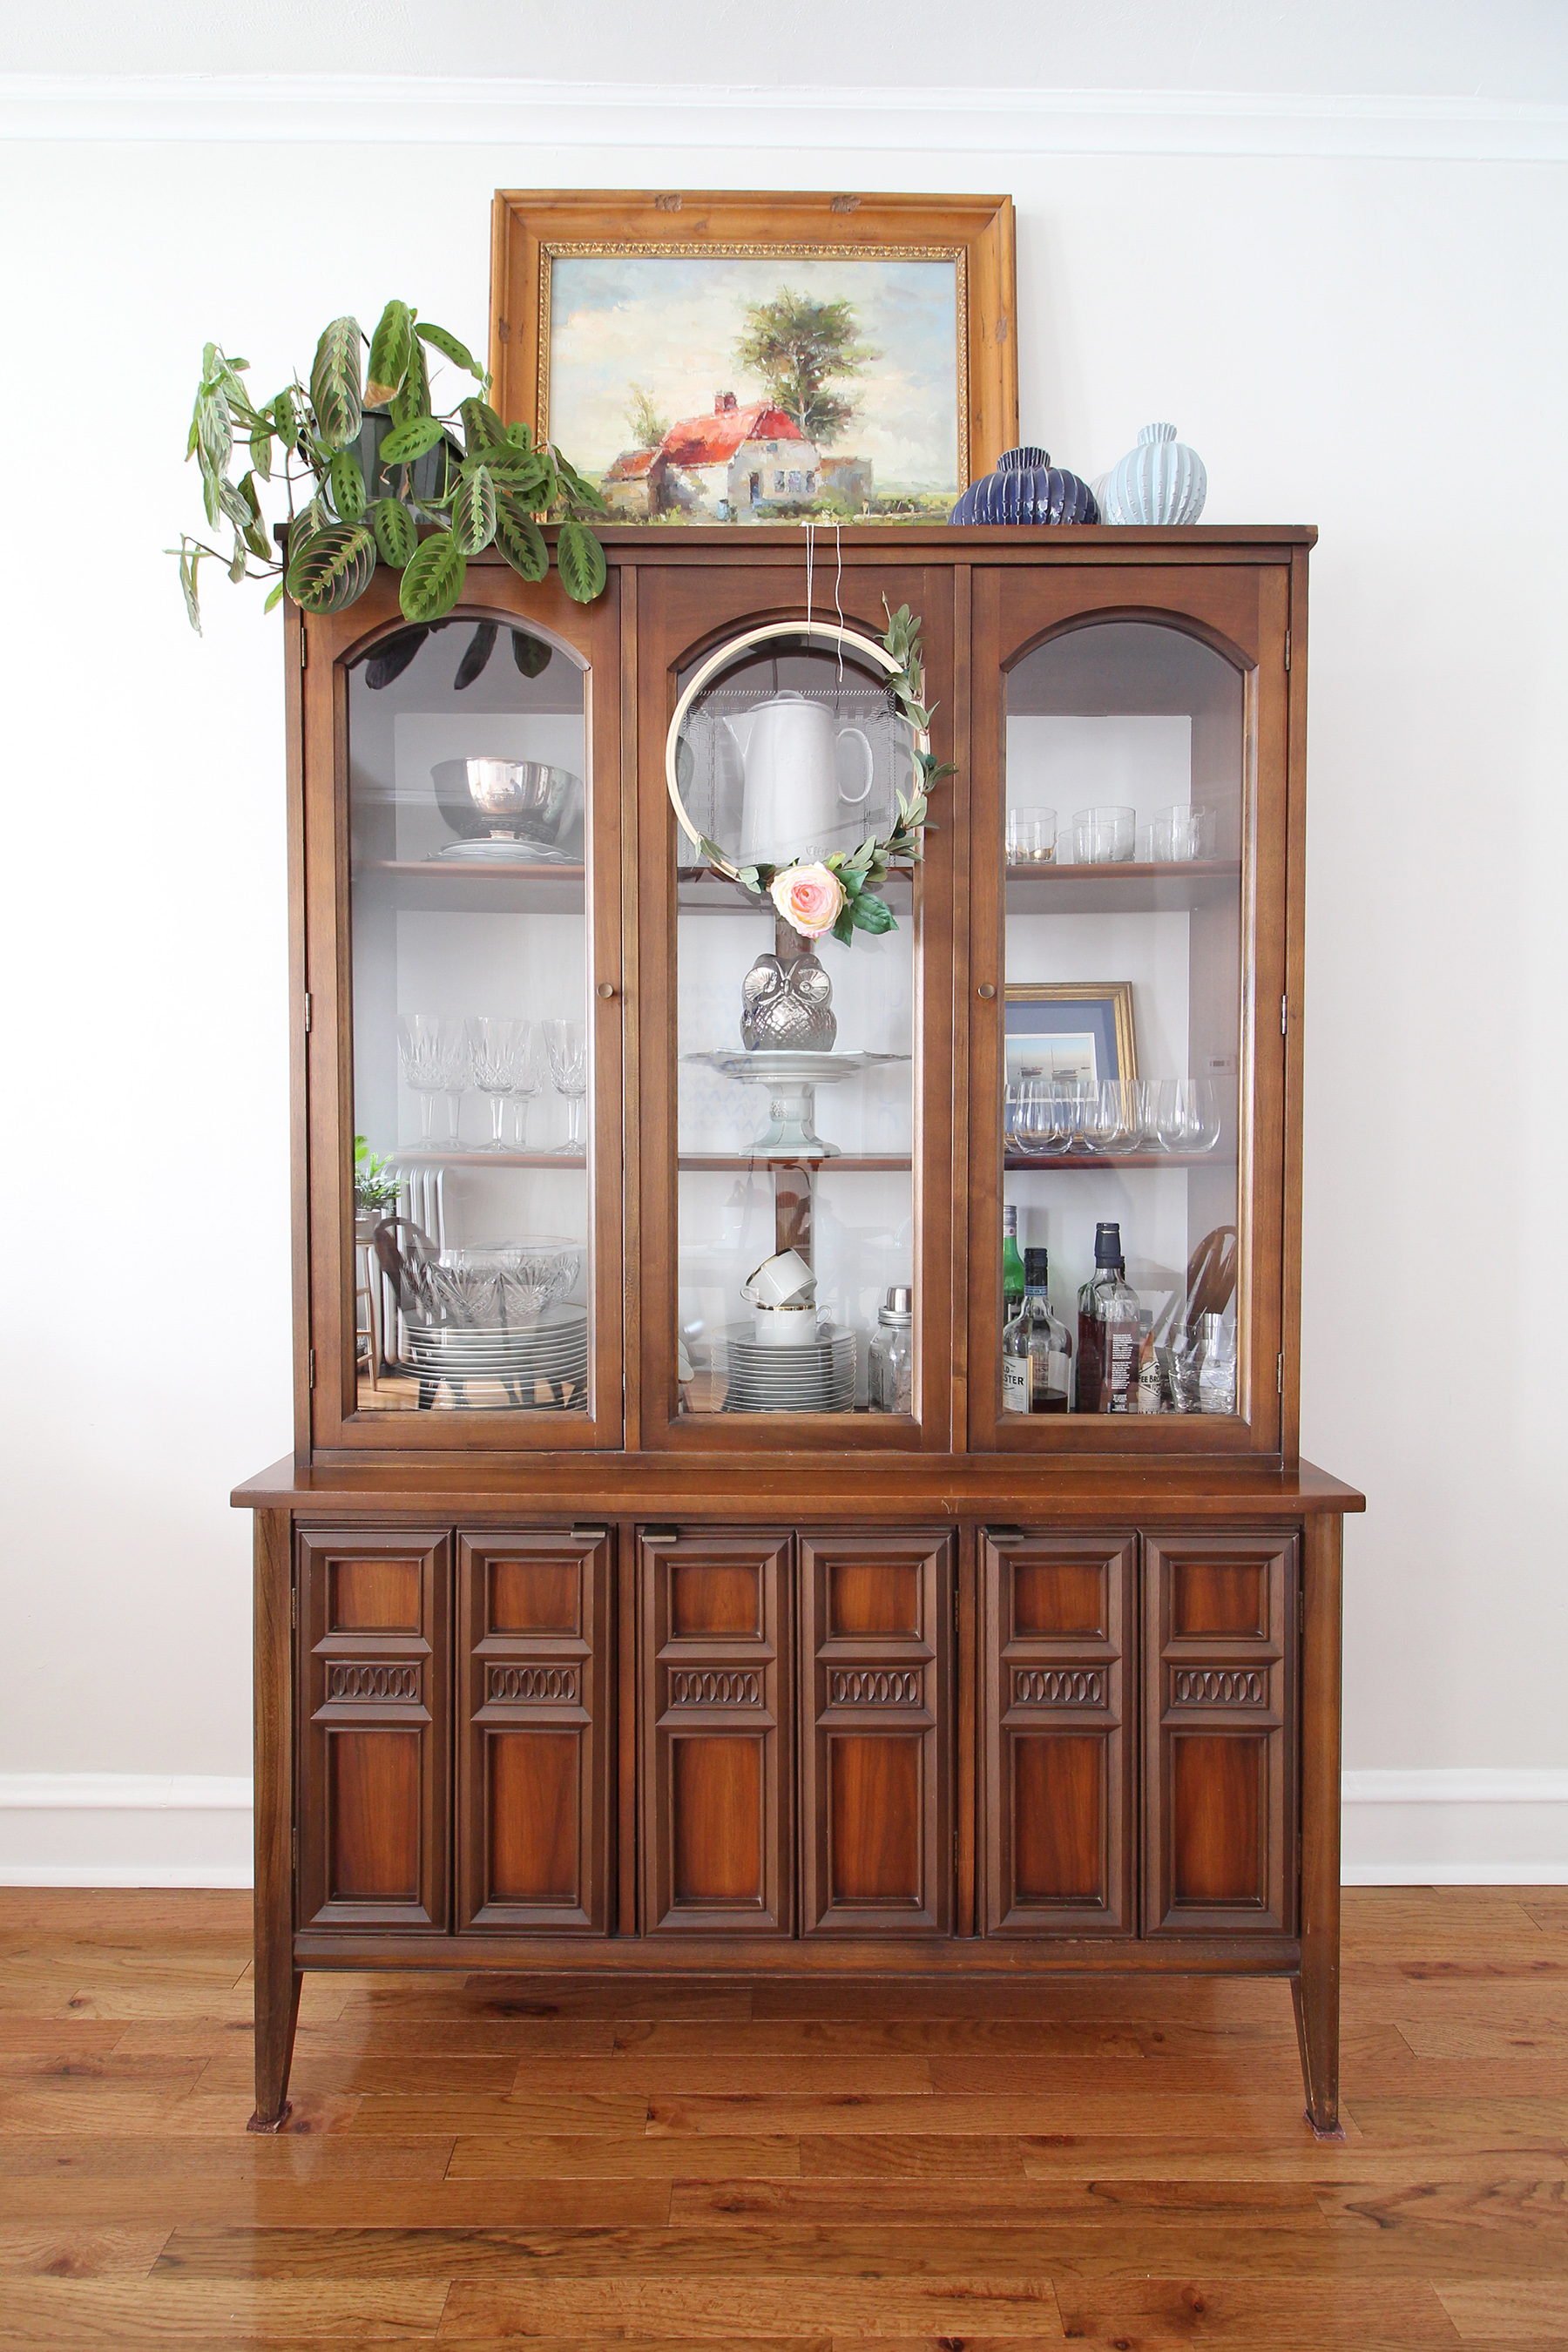 Mid-Century-Eclectic-Dining-Room-Hutch-2.jpg